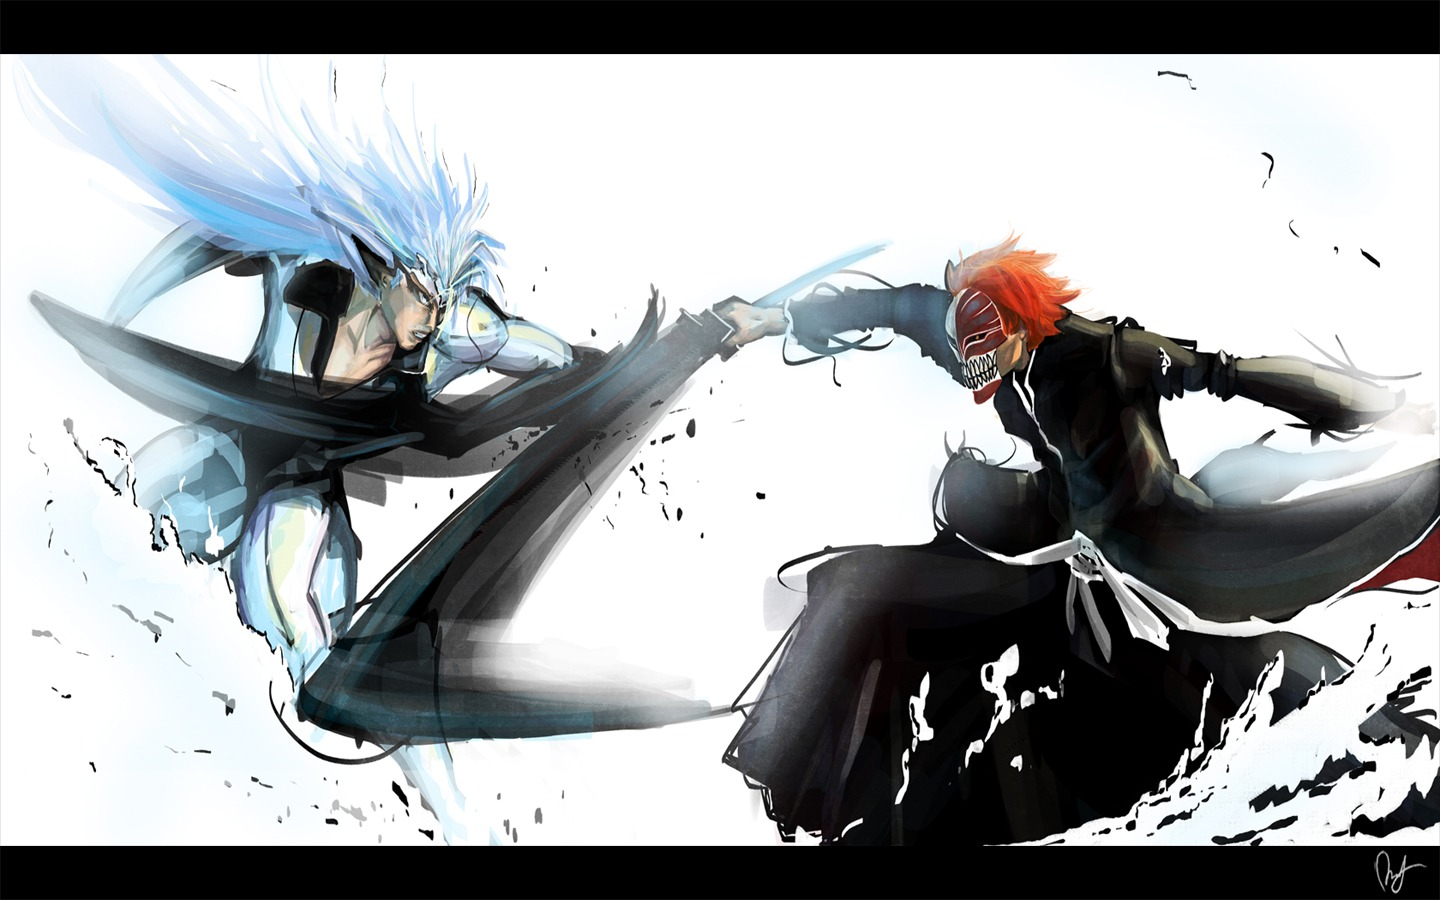 bleach anime and manga images bleach hd wallpaper and background